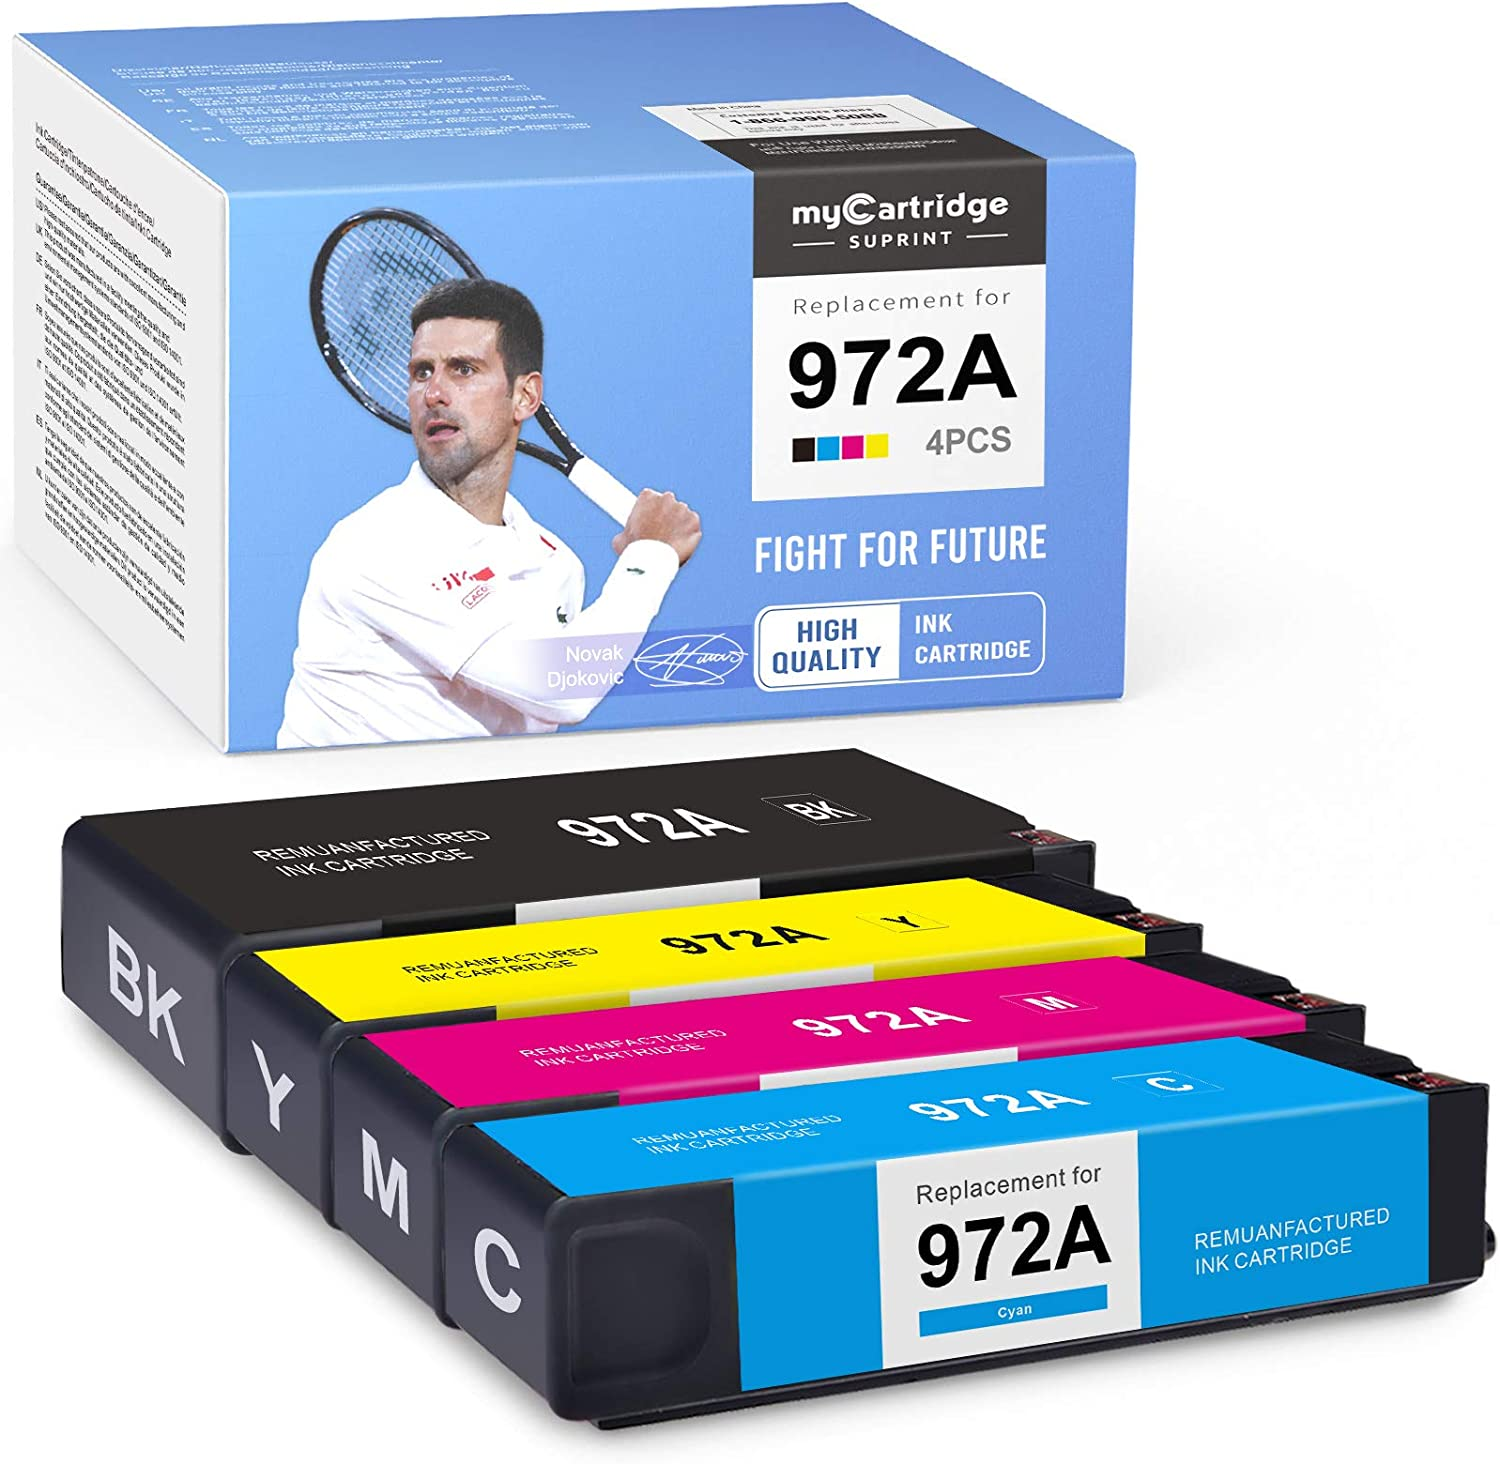 myCartridge SUPRINT Remanufactured Ink Cartridge Replacement for HP 972A 972 A Pagewide MFP 377dw 377dn Pro 352dn 477dw 577dw 452dw 552dw 552dn Managed P55250dw (Black Cyan Magenta Yellow, 4 Pack)